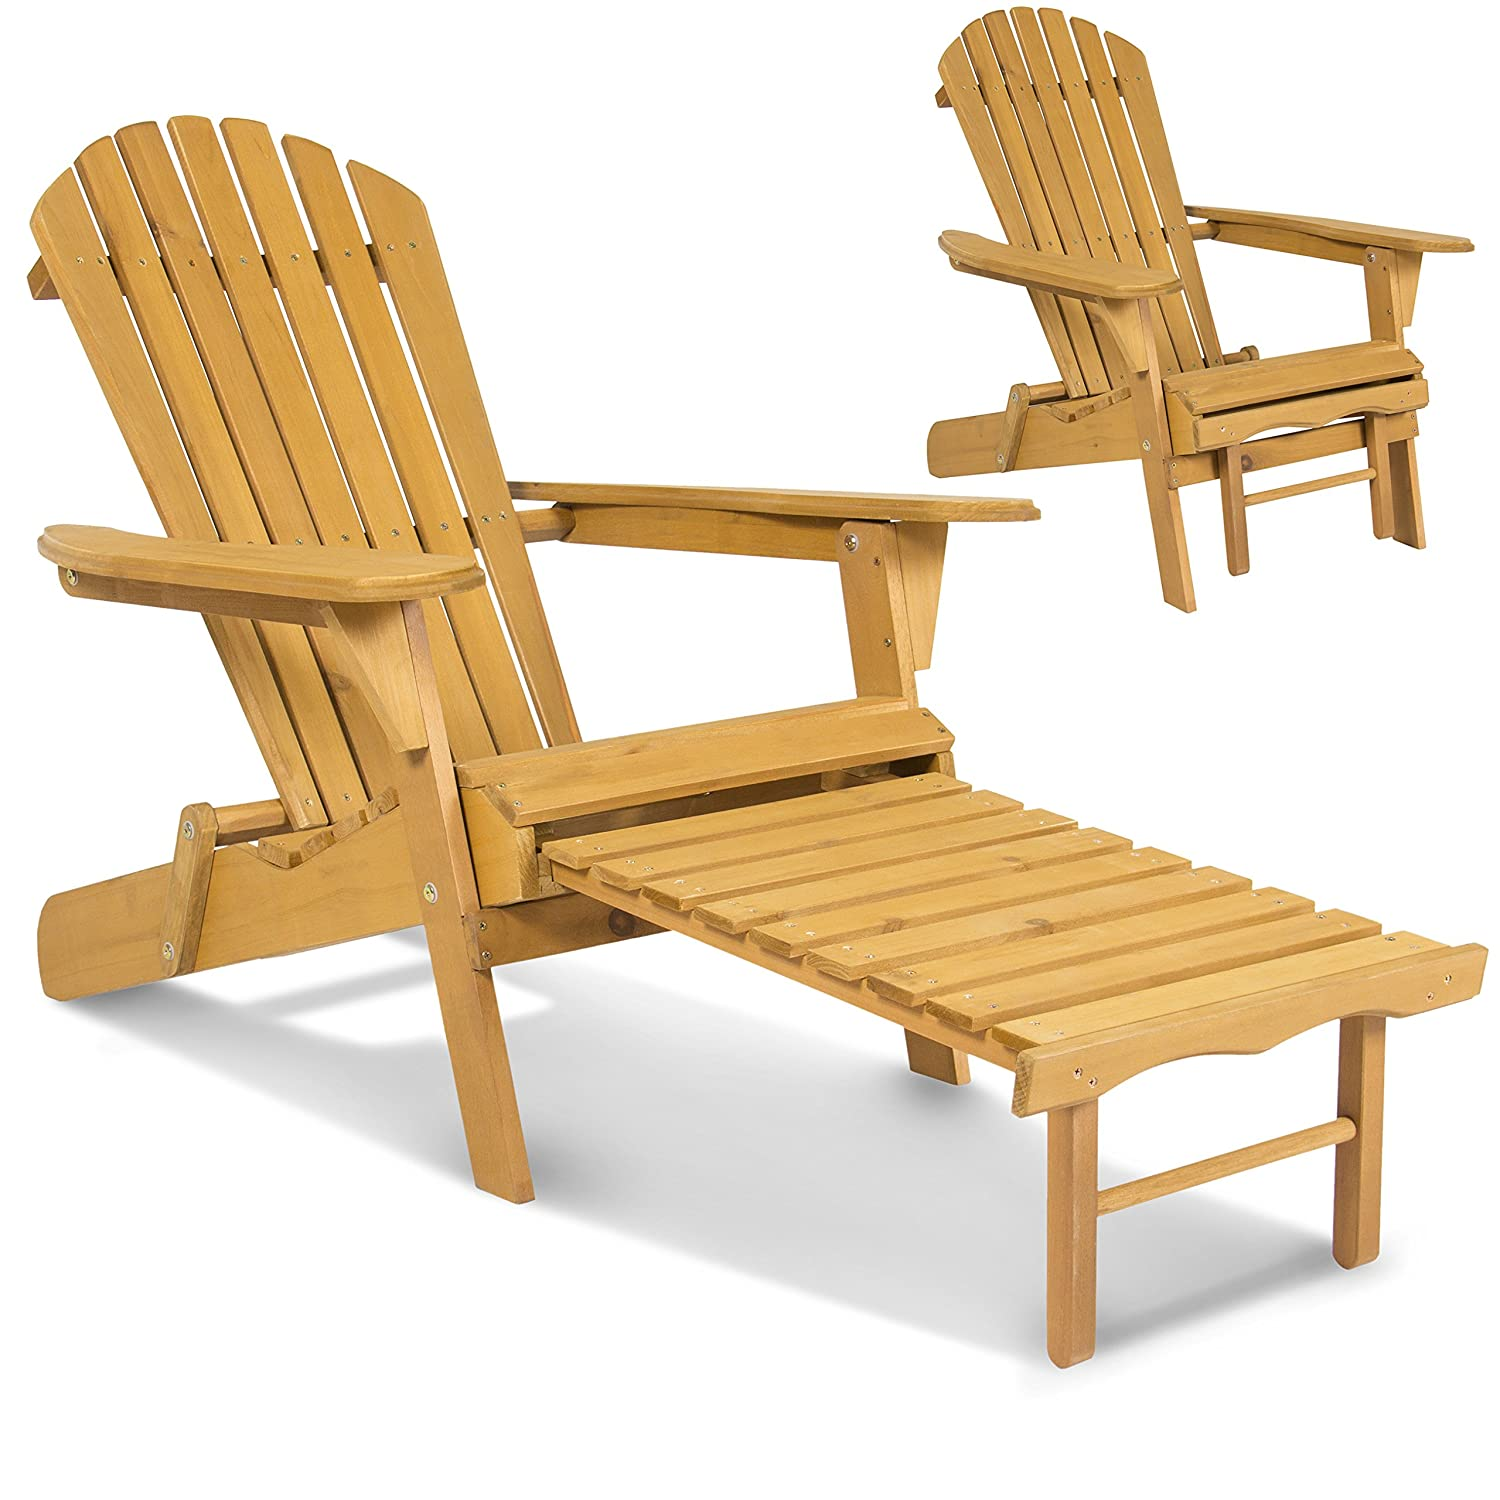 9 Most Stylish Adirondack Chairs With Images Styles At Life